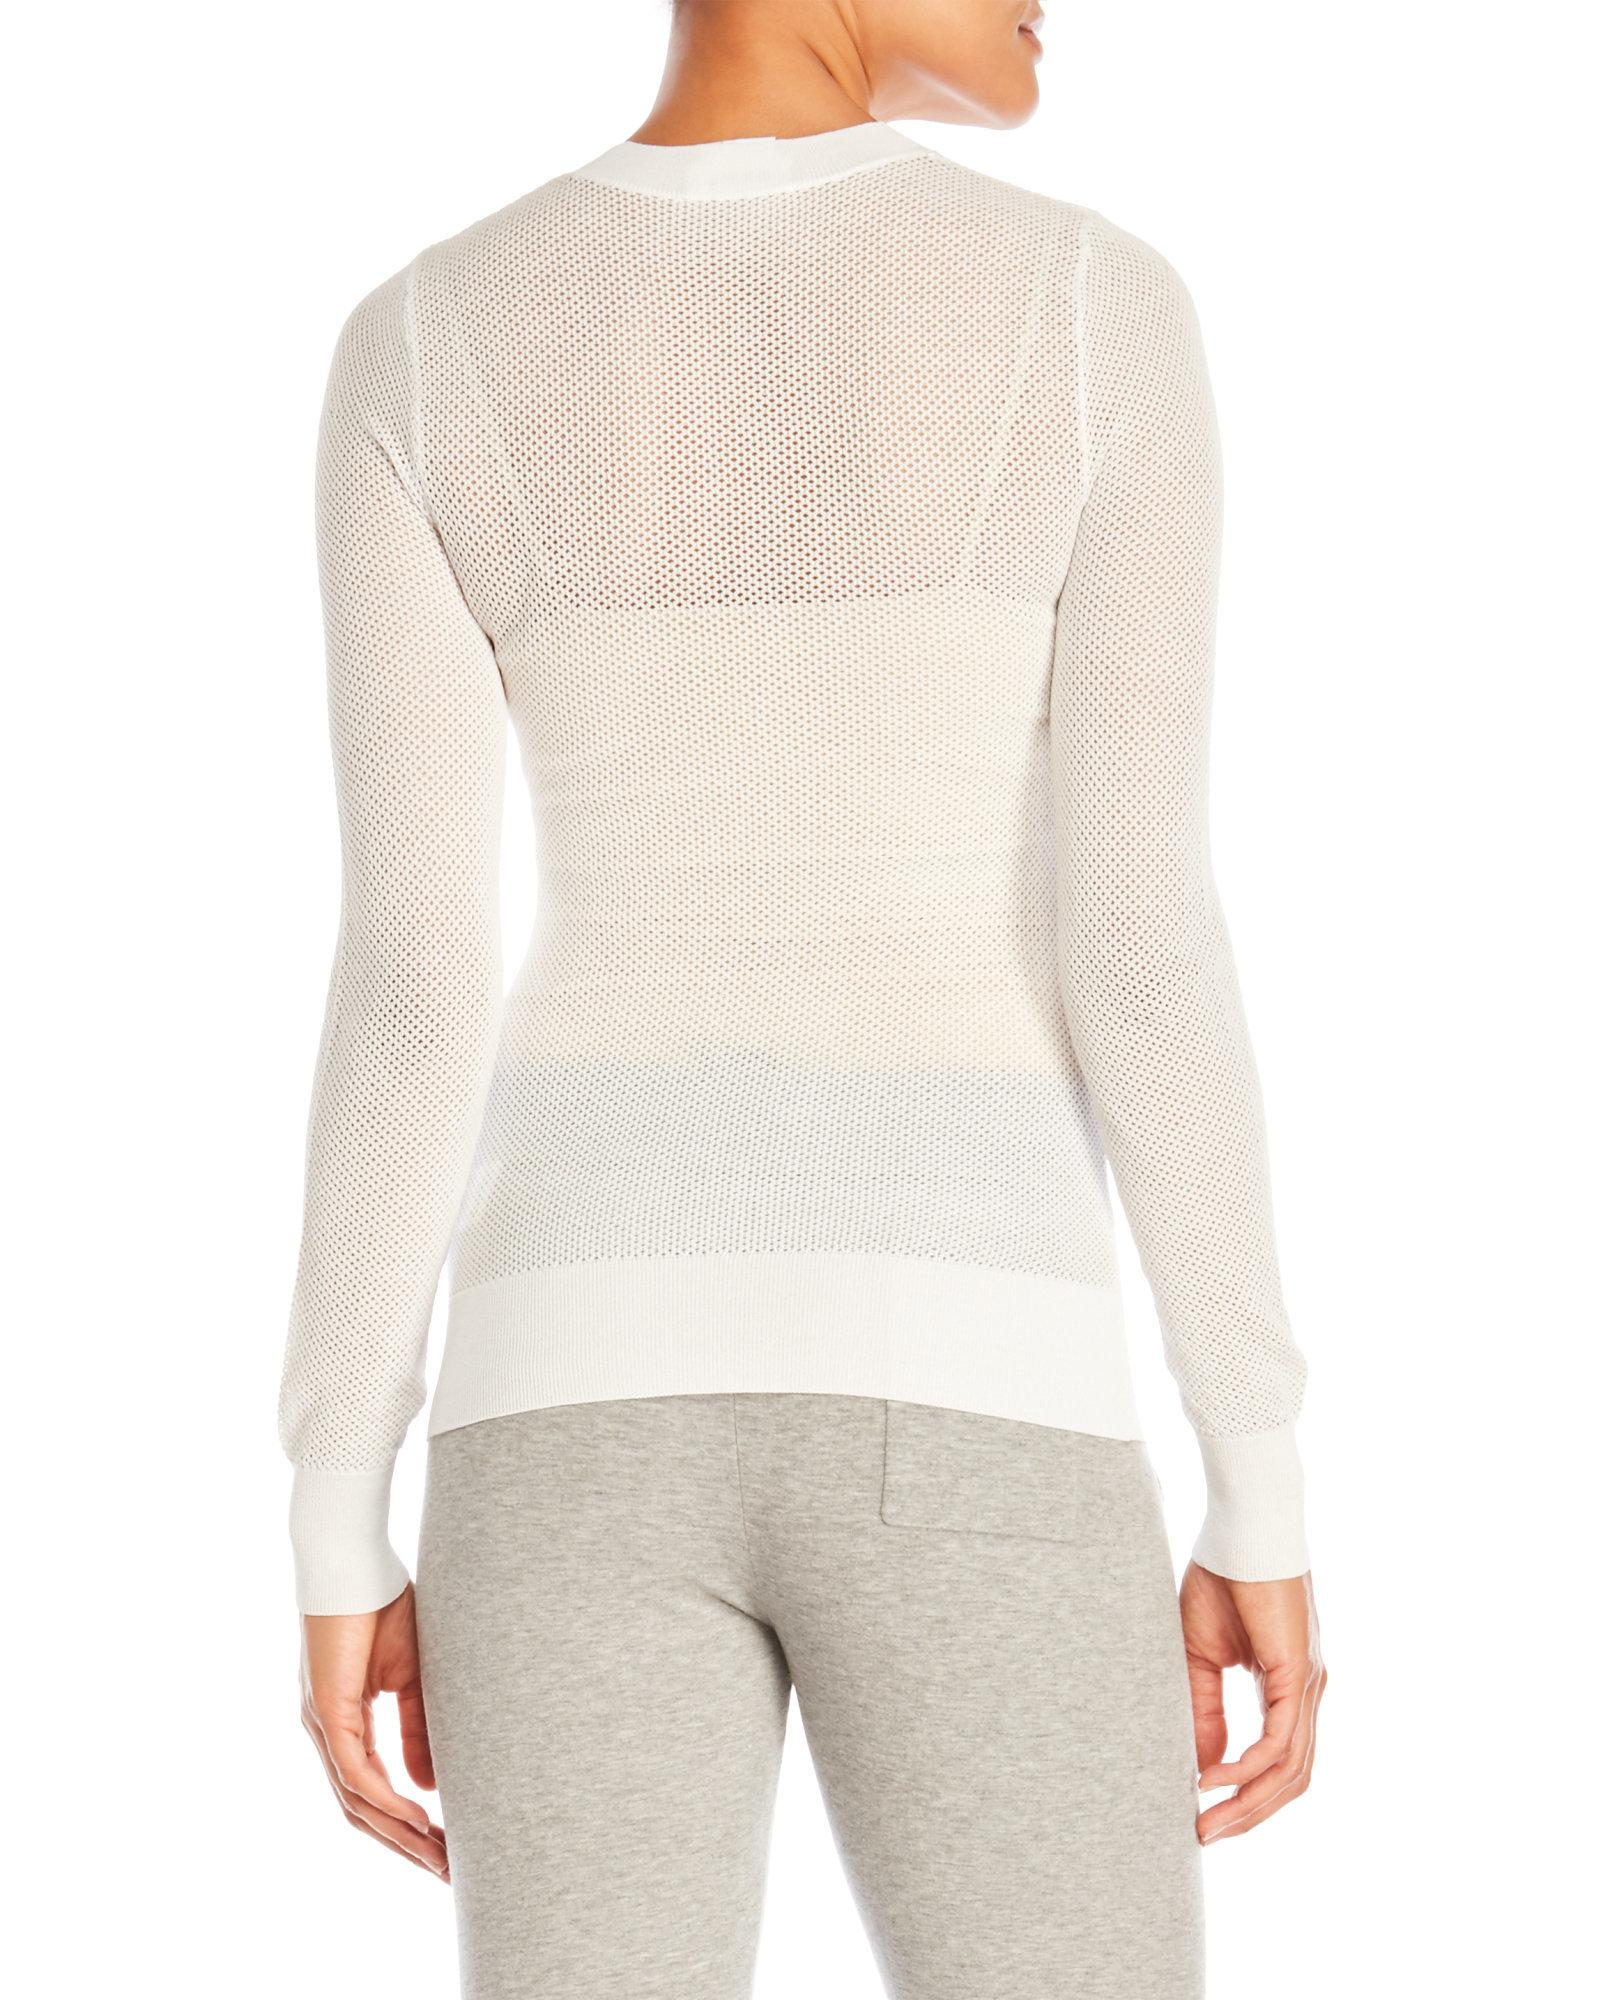 Dkny Long Sleeve Mesh Pullover Sweater in White | Lyst